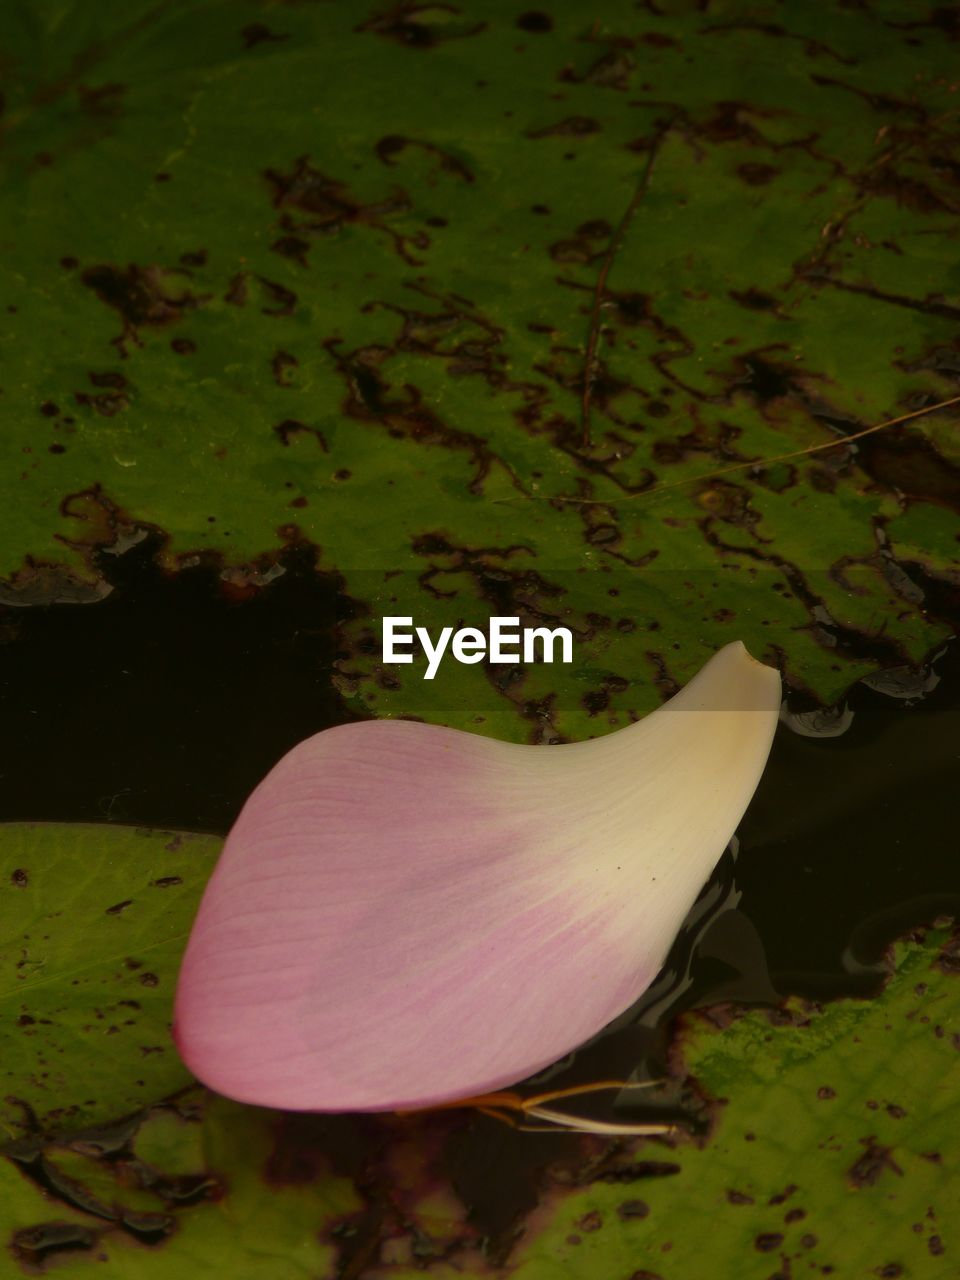 flower, nature, fragility, beauty in nature, plant, petal, growth, flower head, no people, close-up, leaf, outdoors, day, freshness, lily pad